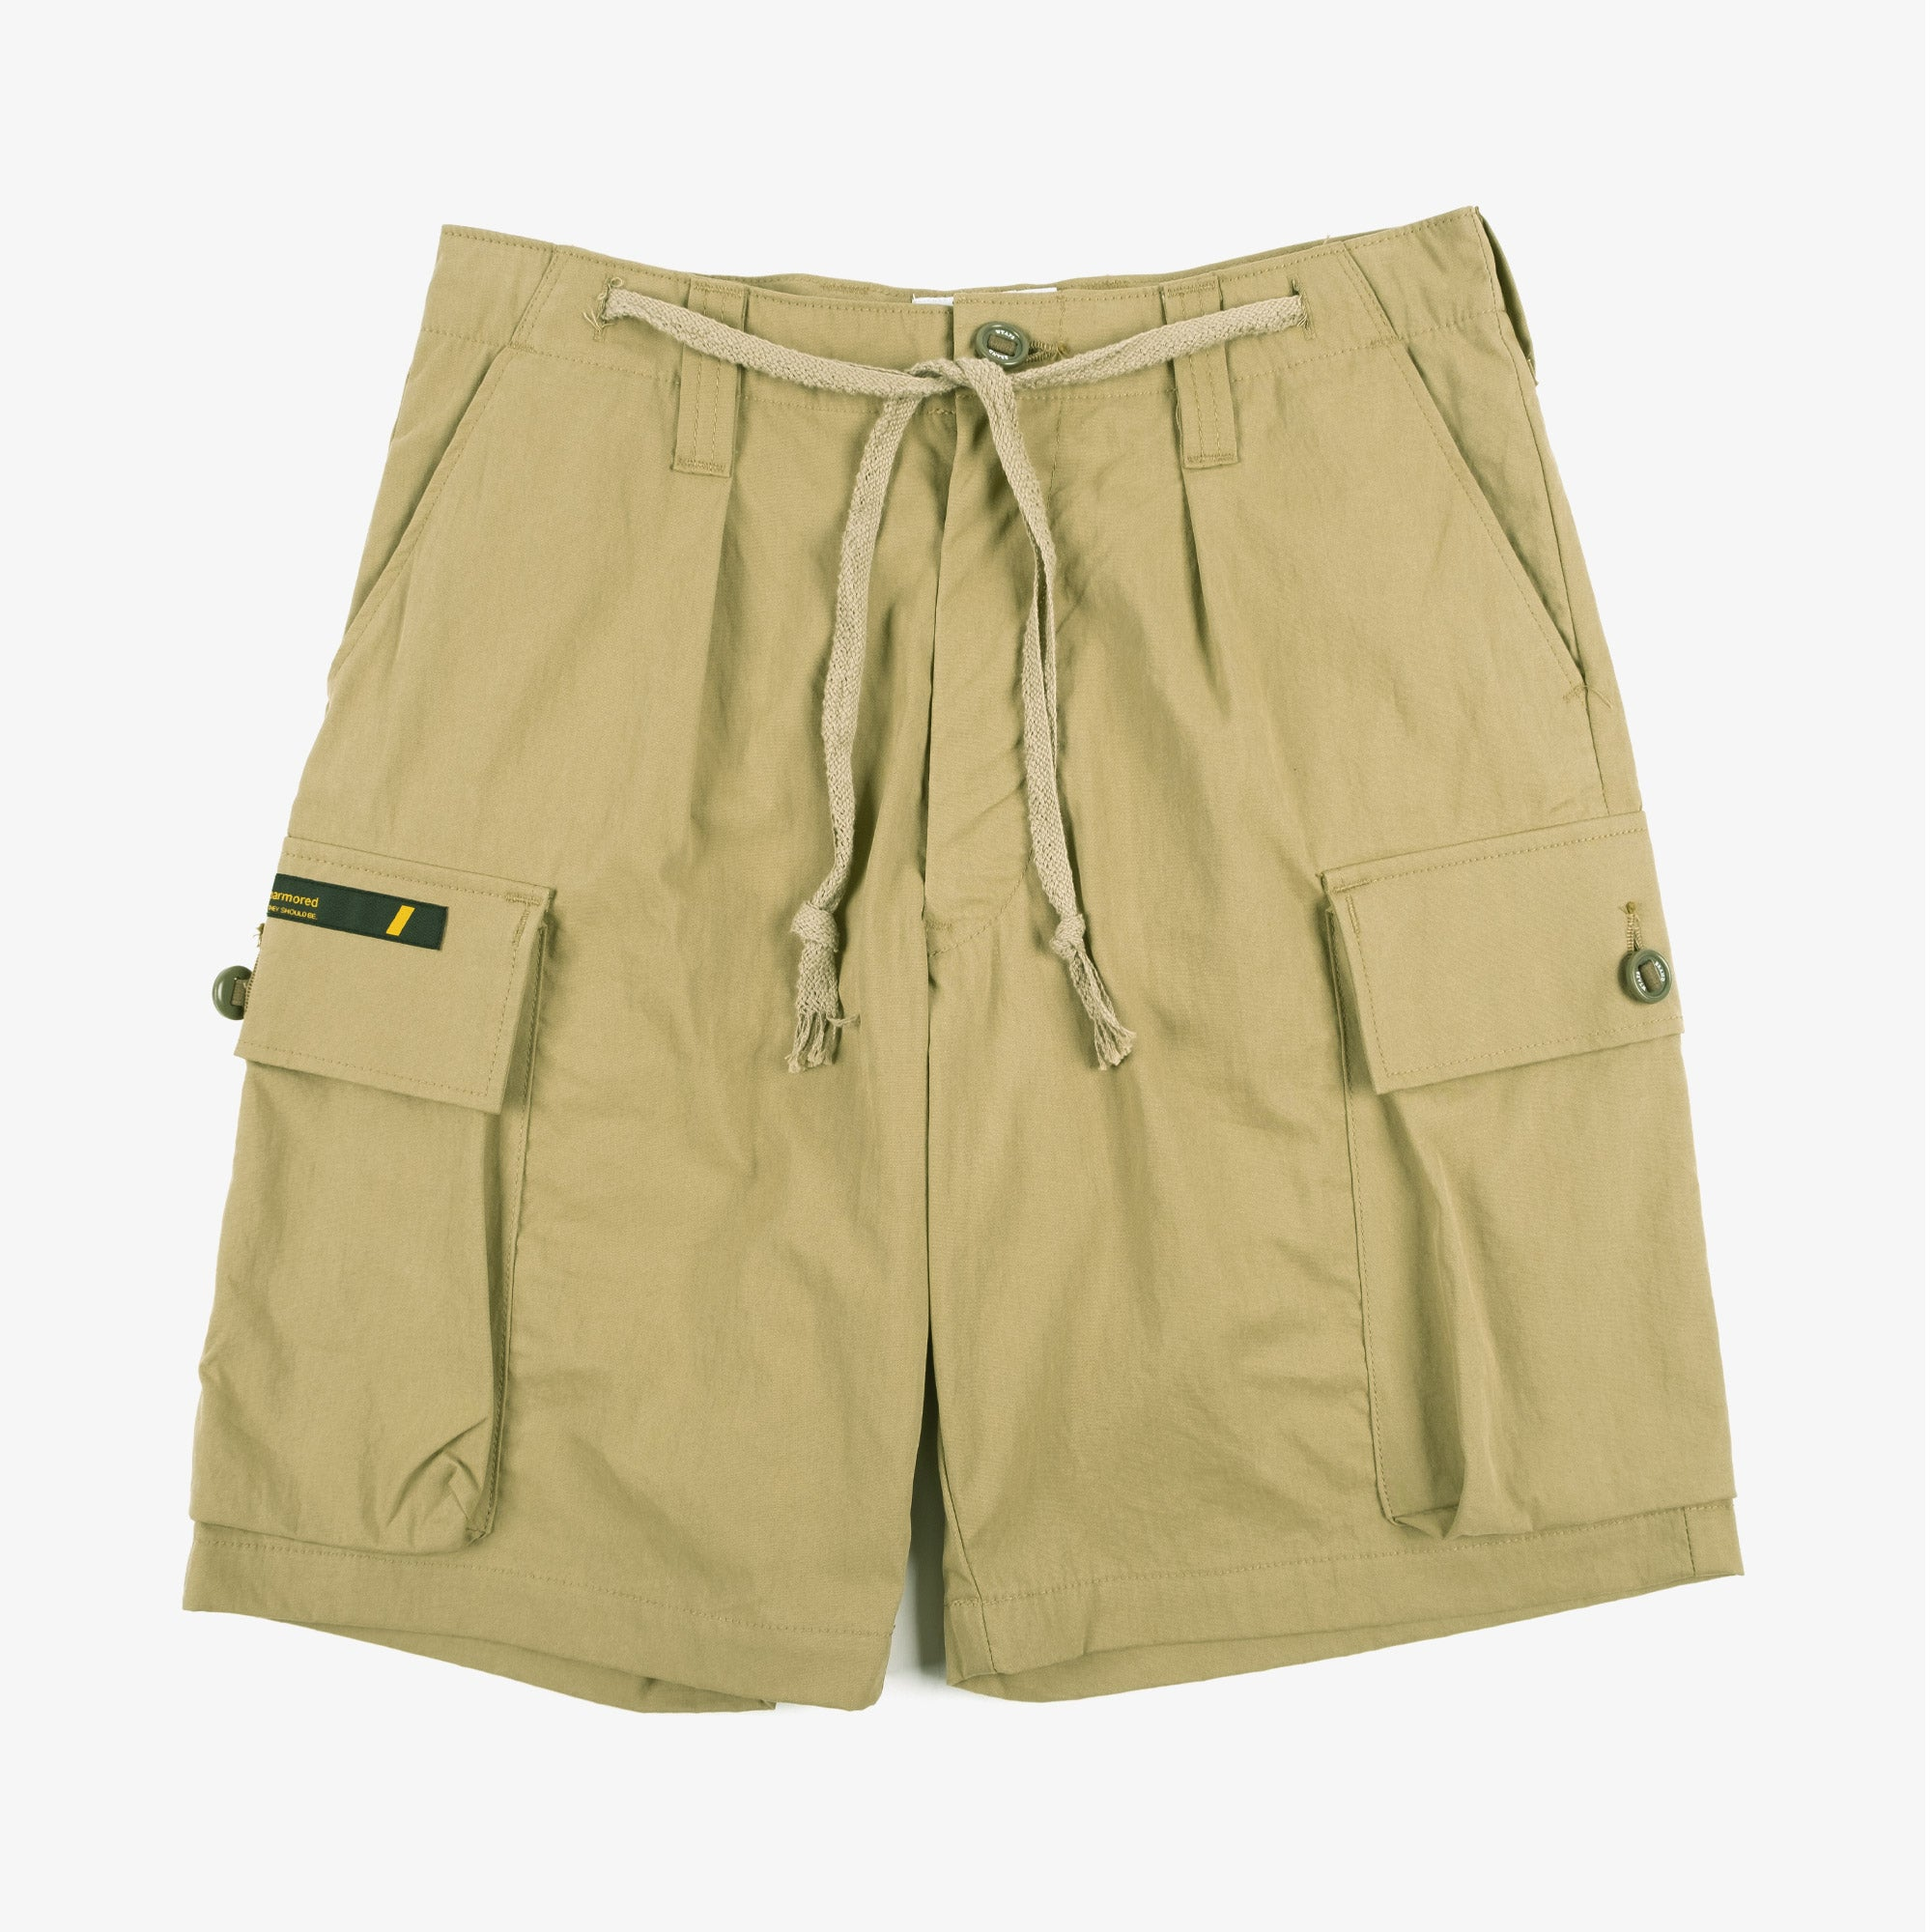 WTAPS Jungle Country Nyco Shorts - Olive Drab 1